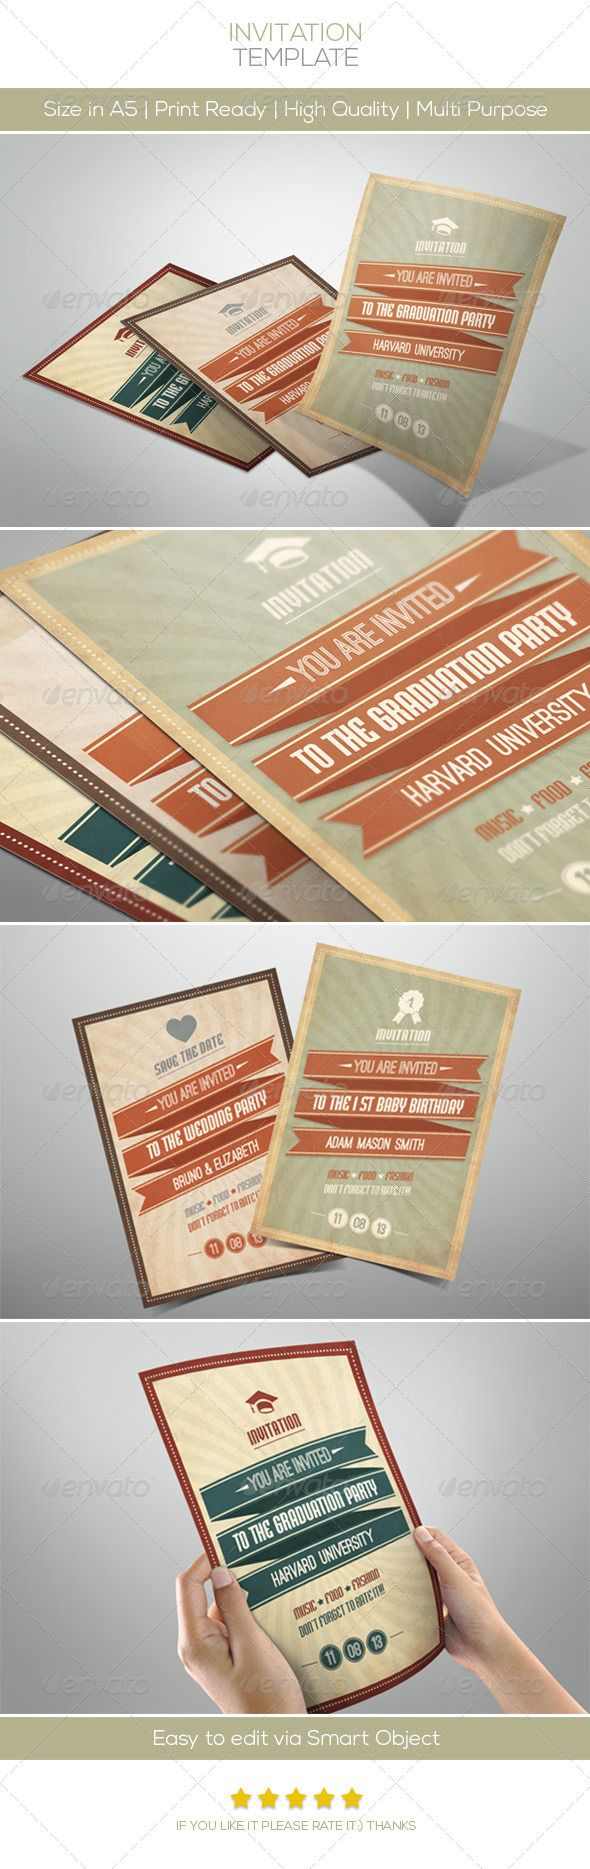 business event invitation templates%0A Retro Invitation